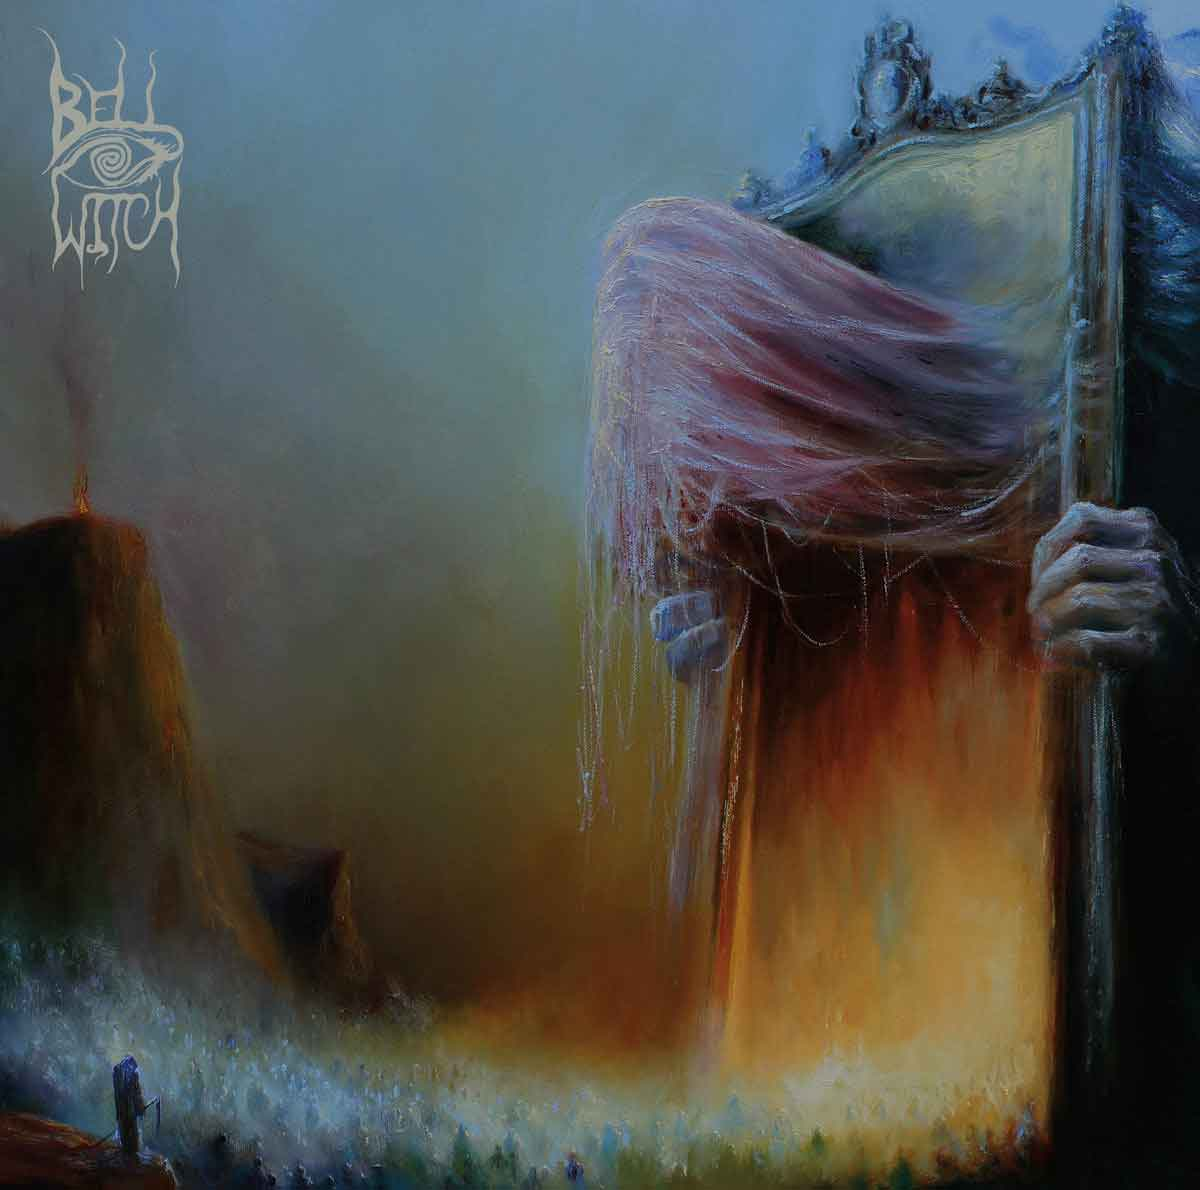 bell witch - mirror reapor